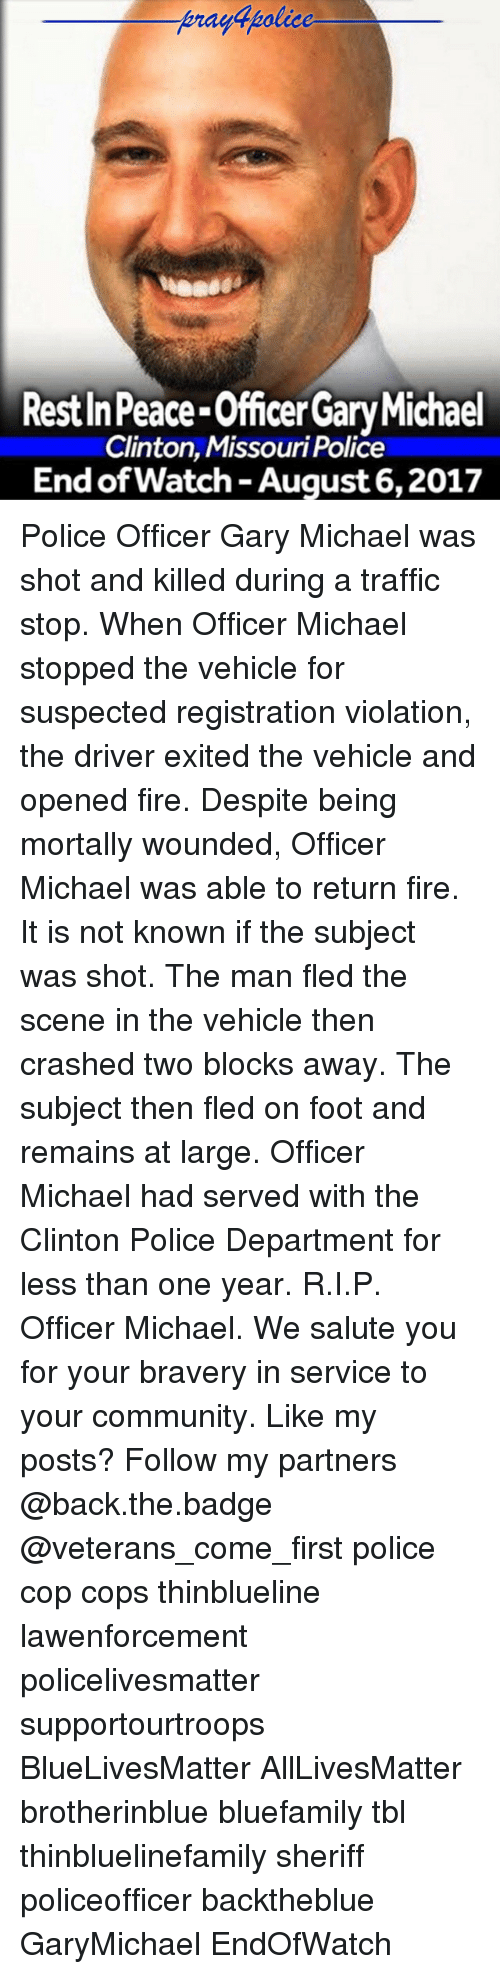 subjective: praydpolice  Rest In Peace-Officer Gary Michael  Clinton, Missouri Police  End of Watch -August 6,2017 Police Officer Gary Michael was shot and killed during a traffic stop. When Officer Michael stopped the vehicle for suspected registration violation, the driver exited the vehicle and opened fire. Despite being mortally wounded, Officer Michael was able to return fire. It is not known if the subject was shot. The man fled the scene in the vehicle then crashed two blocks away. The subject then fled on foot and remains at large. Officer Michael had served with the Clinton Police Department for less than one year. R.I.P. Officer Michael. We salute you for your bravery in service to your community. Like my posts? Follow my partners @back.the.badge @veterans_сome_first police cop cops thinblueline lawenforcement policelivesmatter supportourtroops BlueLivesMatter AllLivesMatter brotherinblue bluefamily tbl thinbluelinefamily sheriff policeofficer backtheblue GaryMichael EndOfWatch